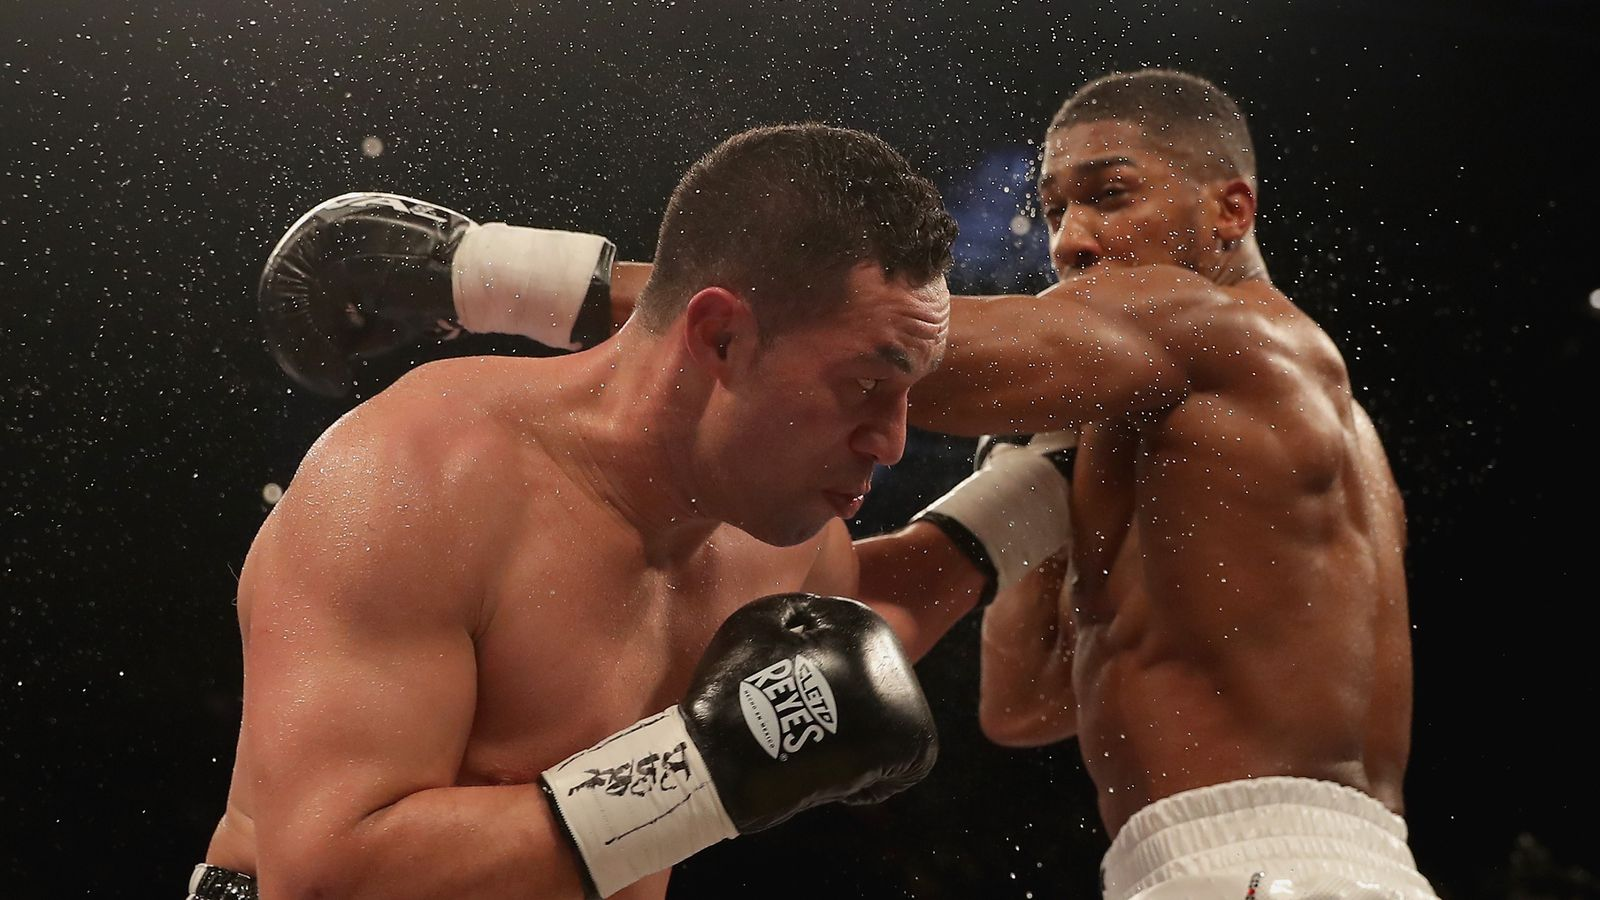 Anthony Joshua told by Joseph Parker 'I'd be more aggressive' in a rematch